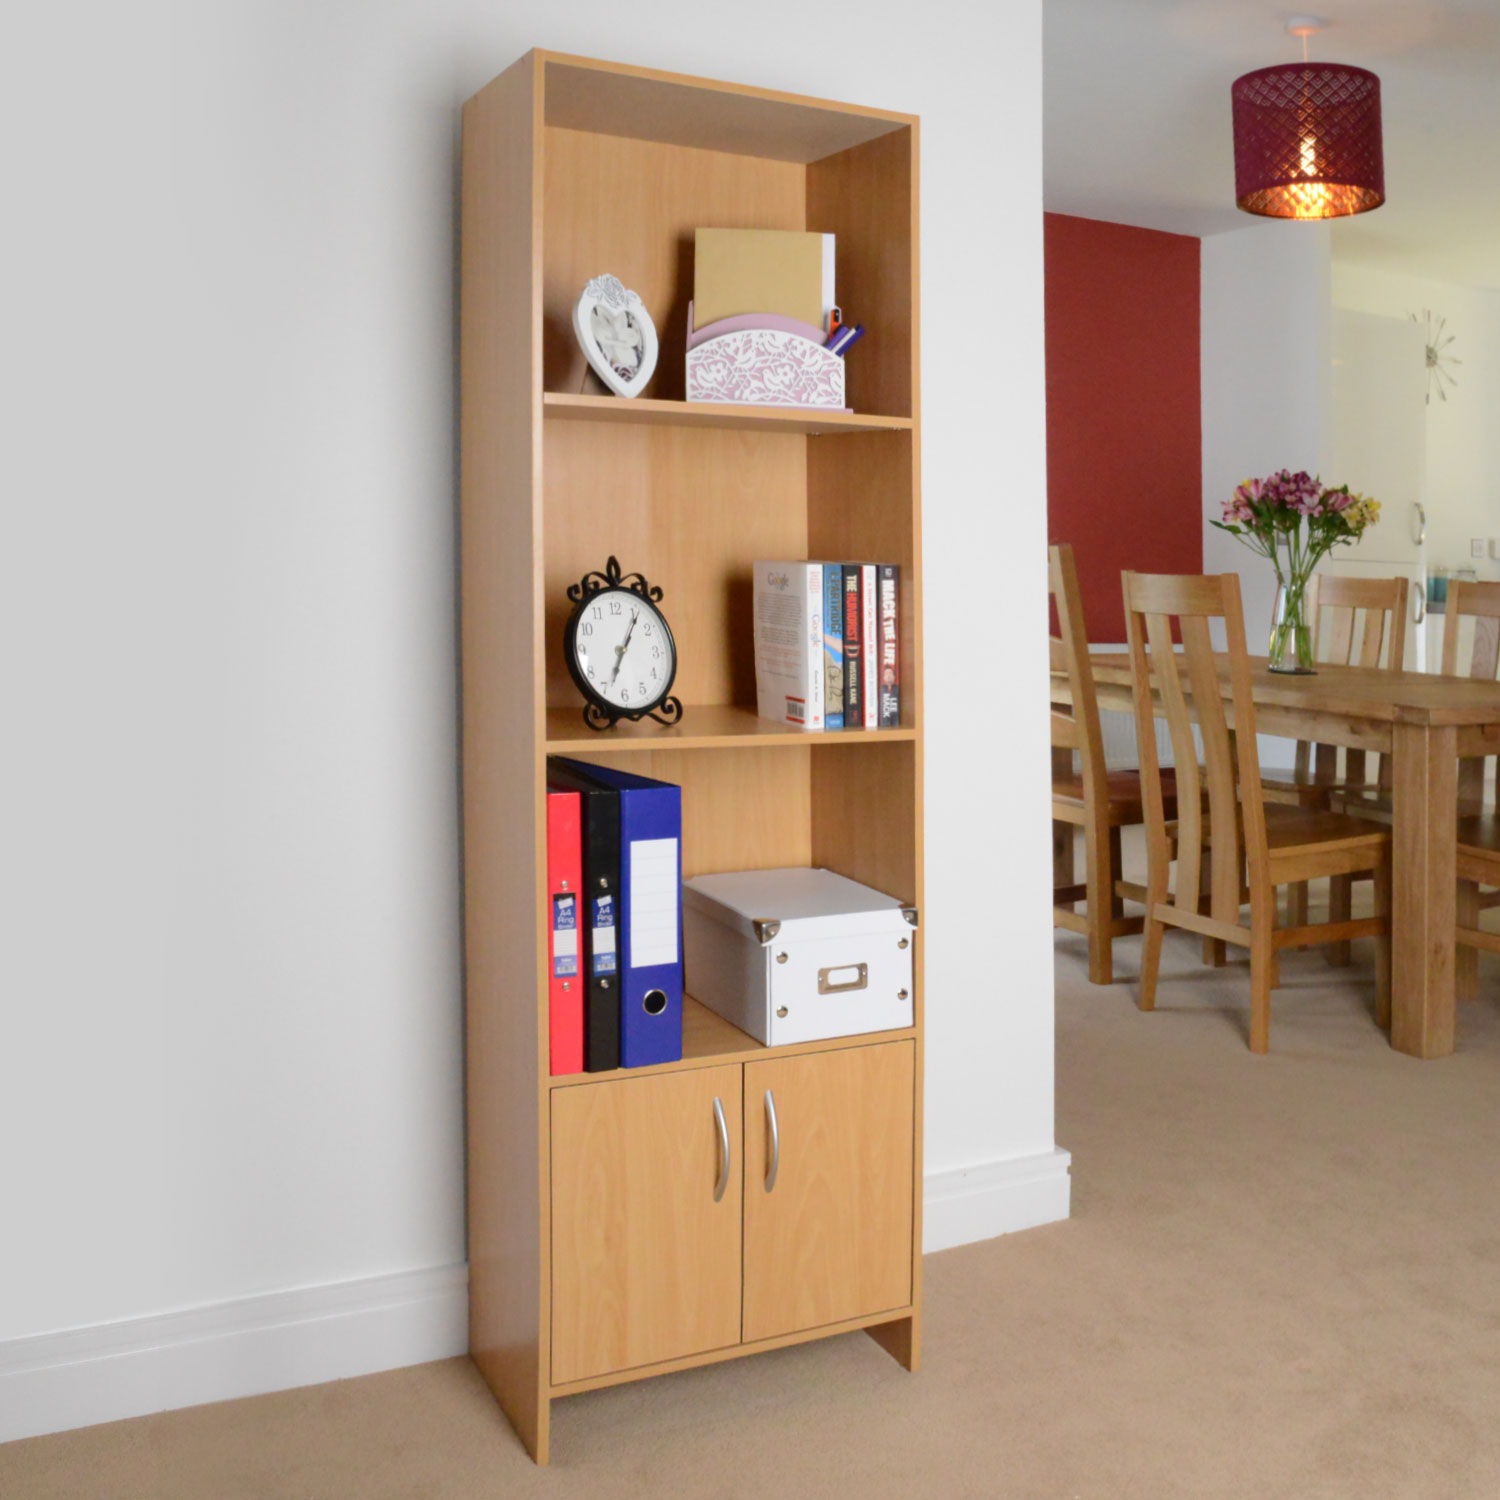 Image of Christow 3 Shelf Wooden Storage Unit With Cupboard (Beech)